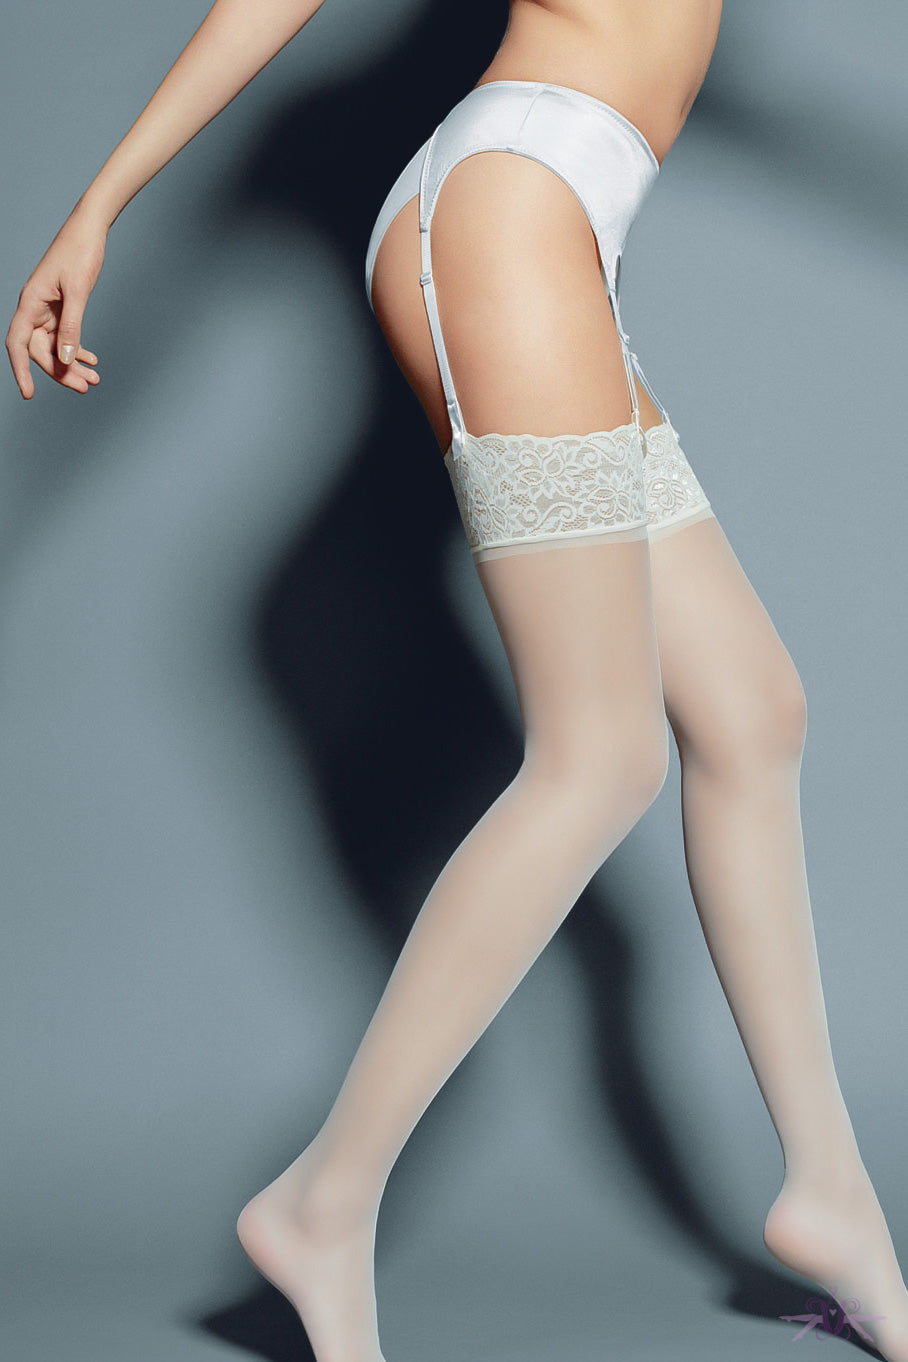 Veneziana Mary Stockings - Mayfair Stockings